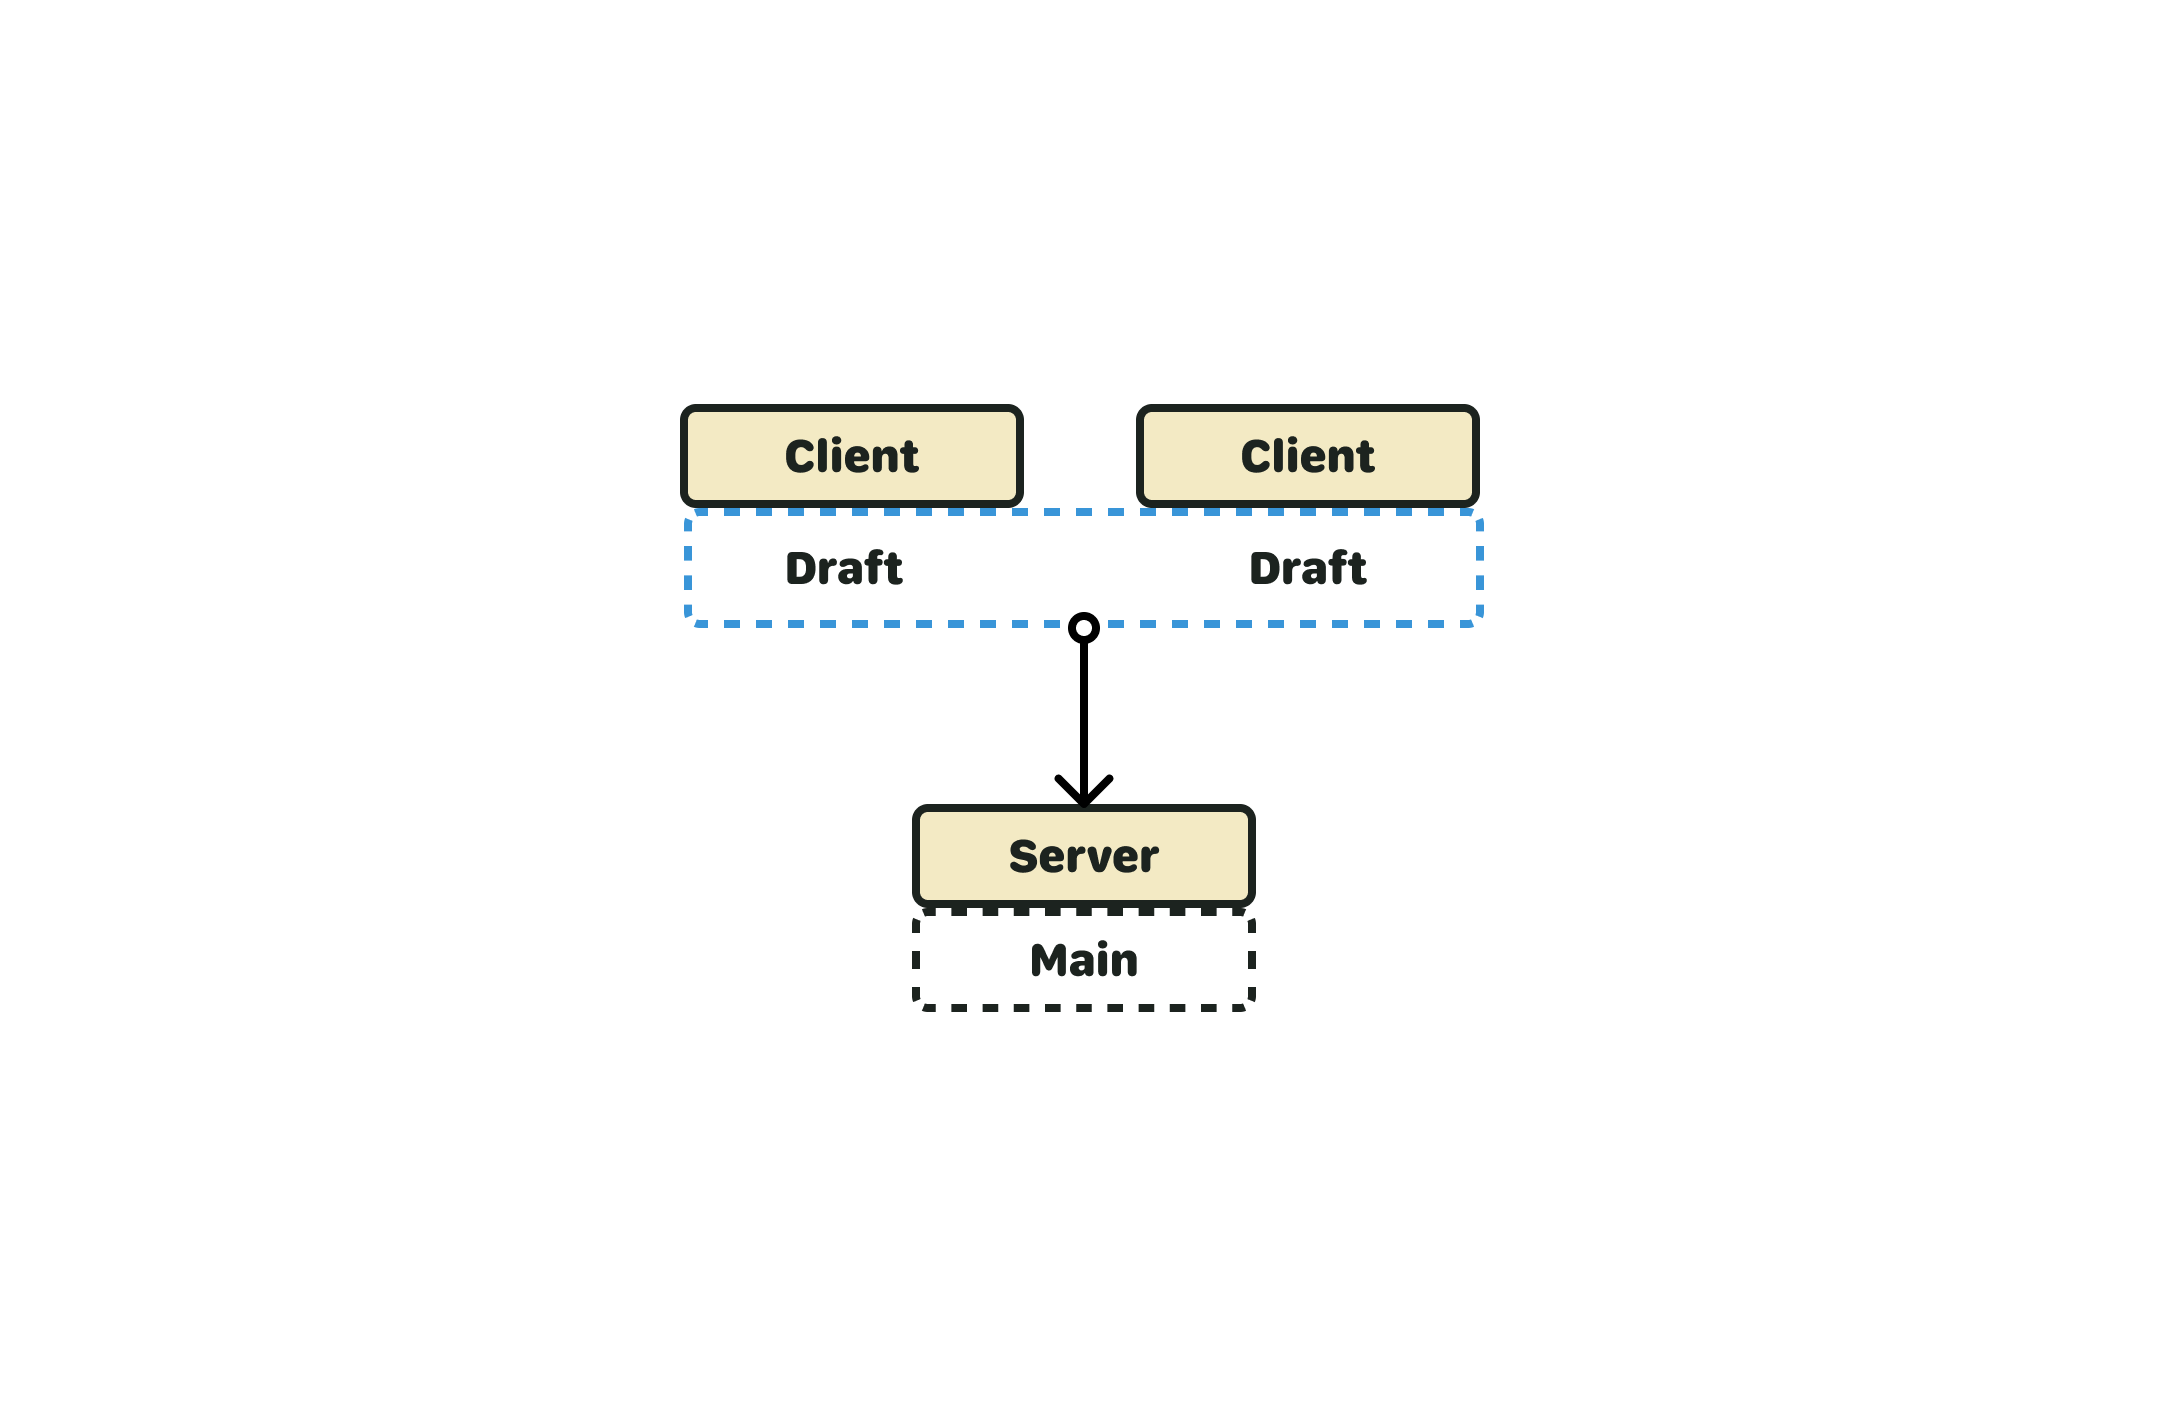 """A diagram of a client and server relationship, but this time there are multiple clients. The clients are collectively """"holding"""" a single draft, split between them. The server is still holding it's authoritative copy, and there's an arrow connecting the group of clients to the server."""